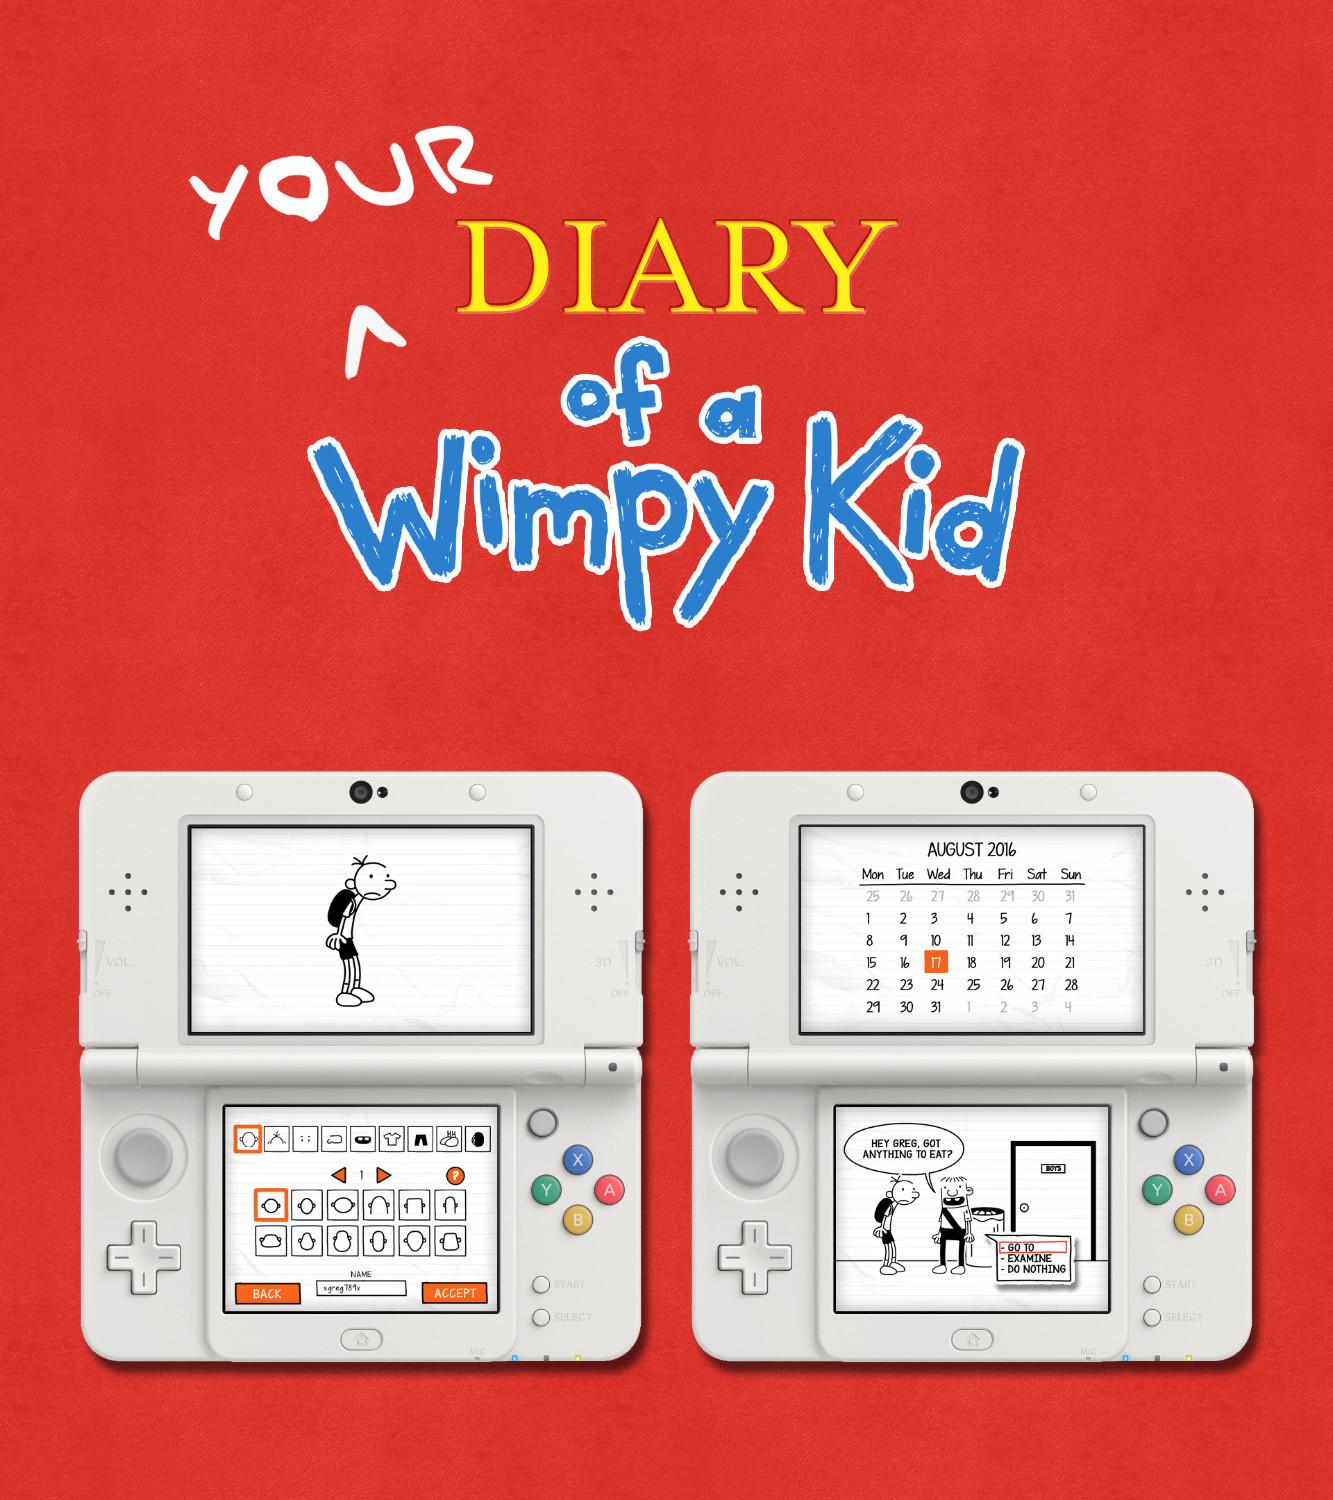 Diary of a Wimpy Kid UI & Gameplay Mockup